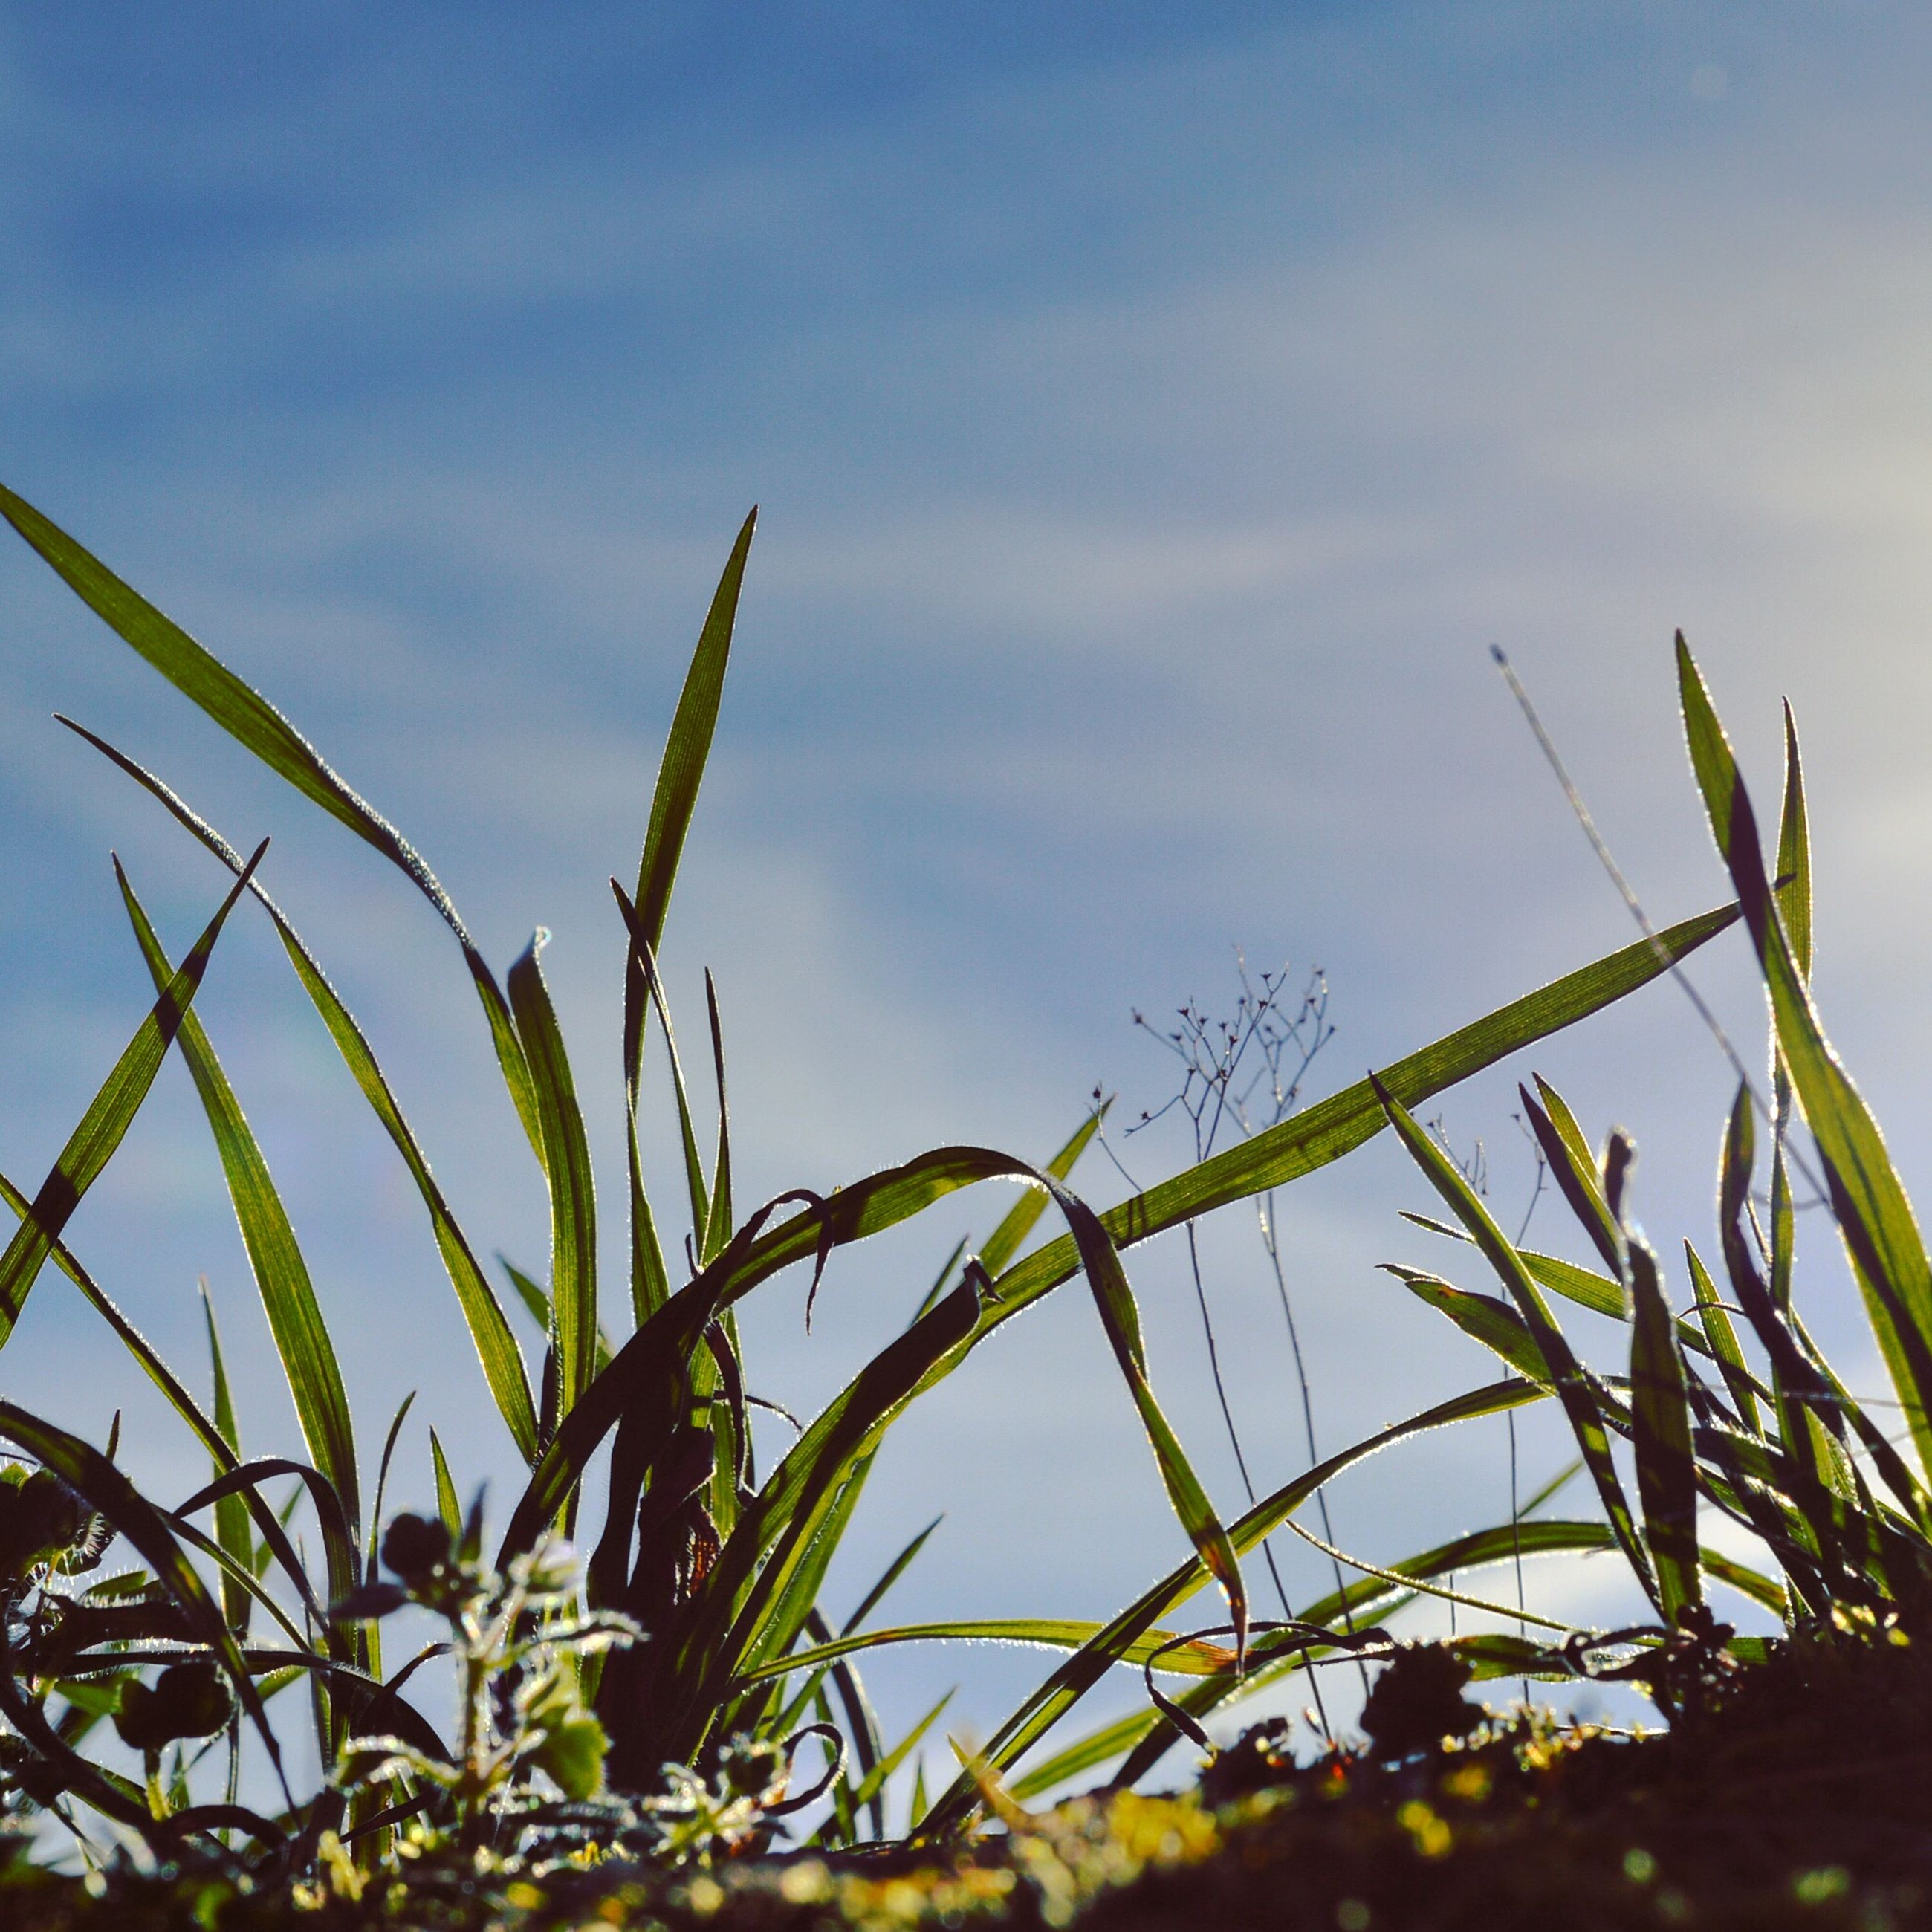 growth, plant, sky, low angle view, nature, leaf, beauty in nature, cloud - sky, growing, tranquility, cloud, stem, day, close-up, outdoors, green color, no people, field, blue, focus on foreground